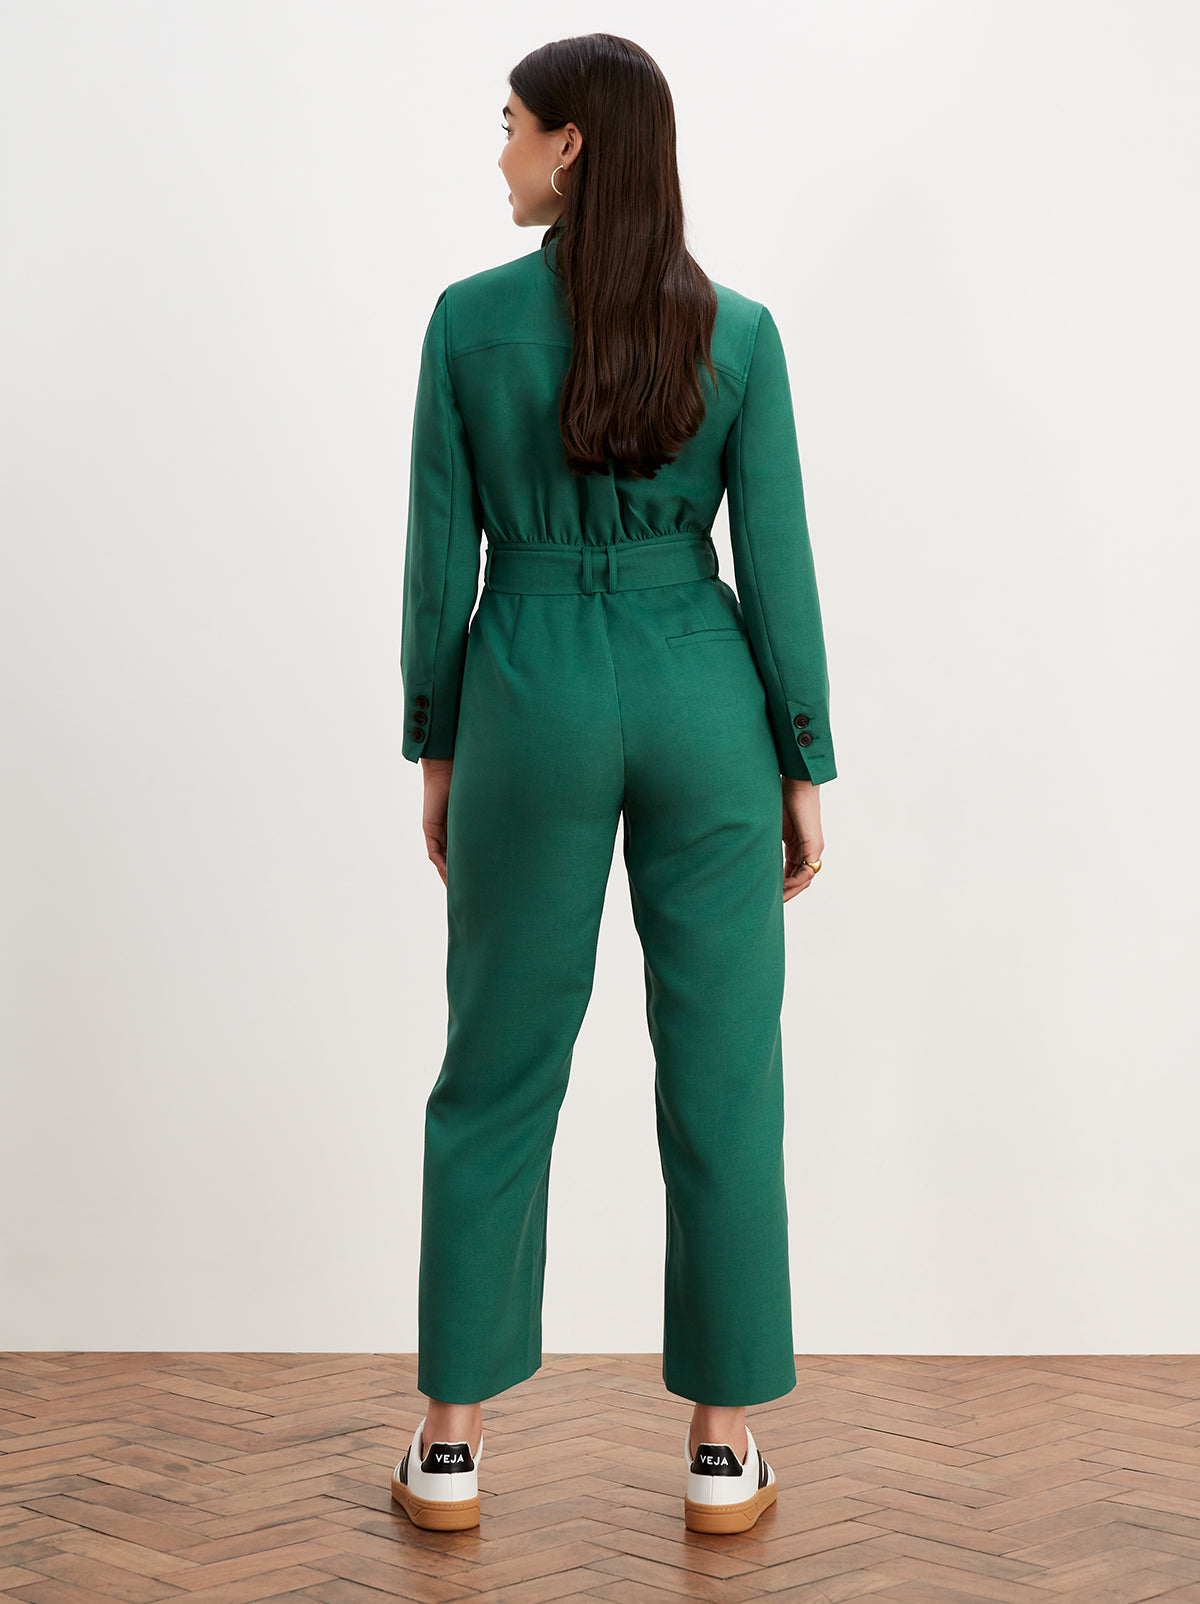 Celeste Green Tailored Jumpsuit